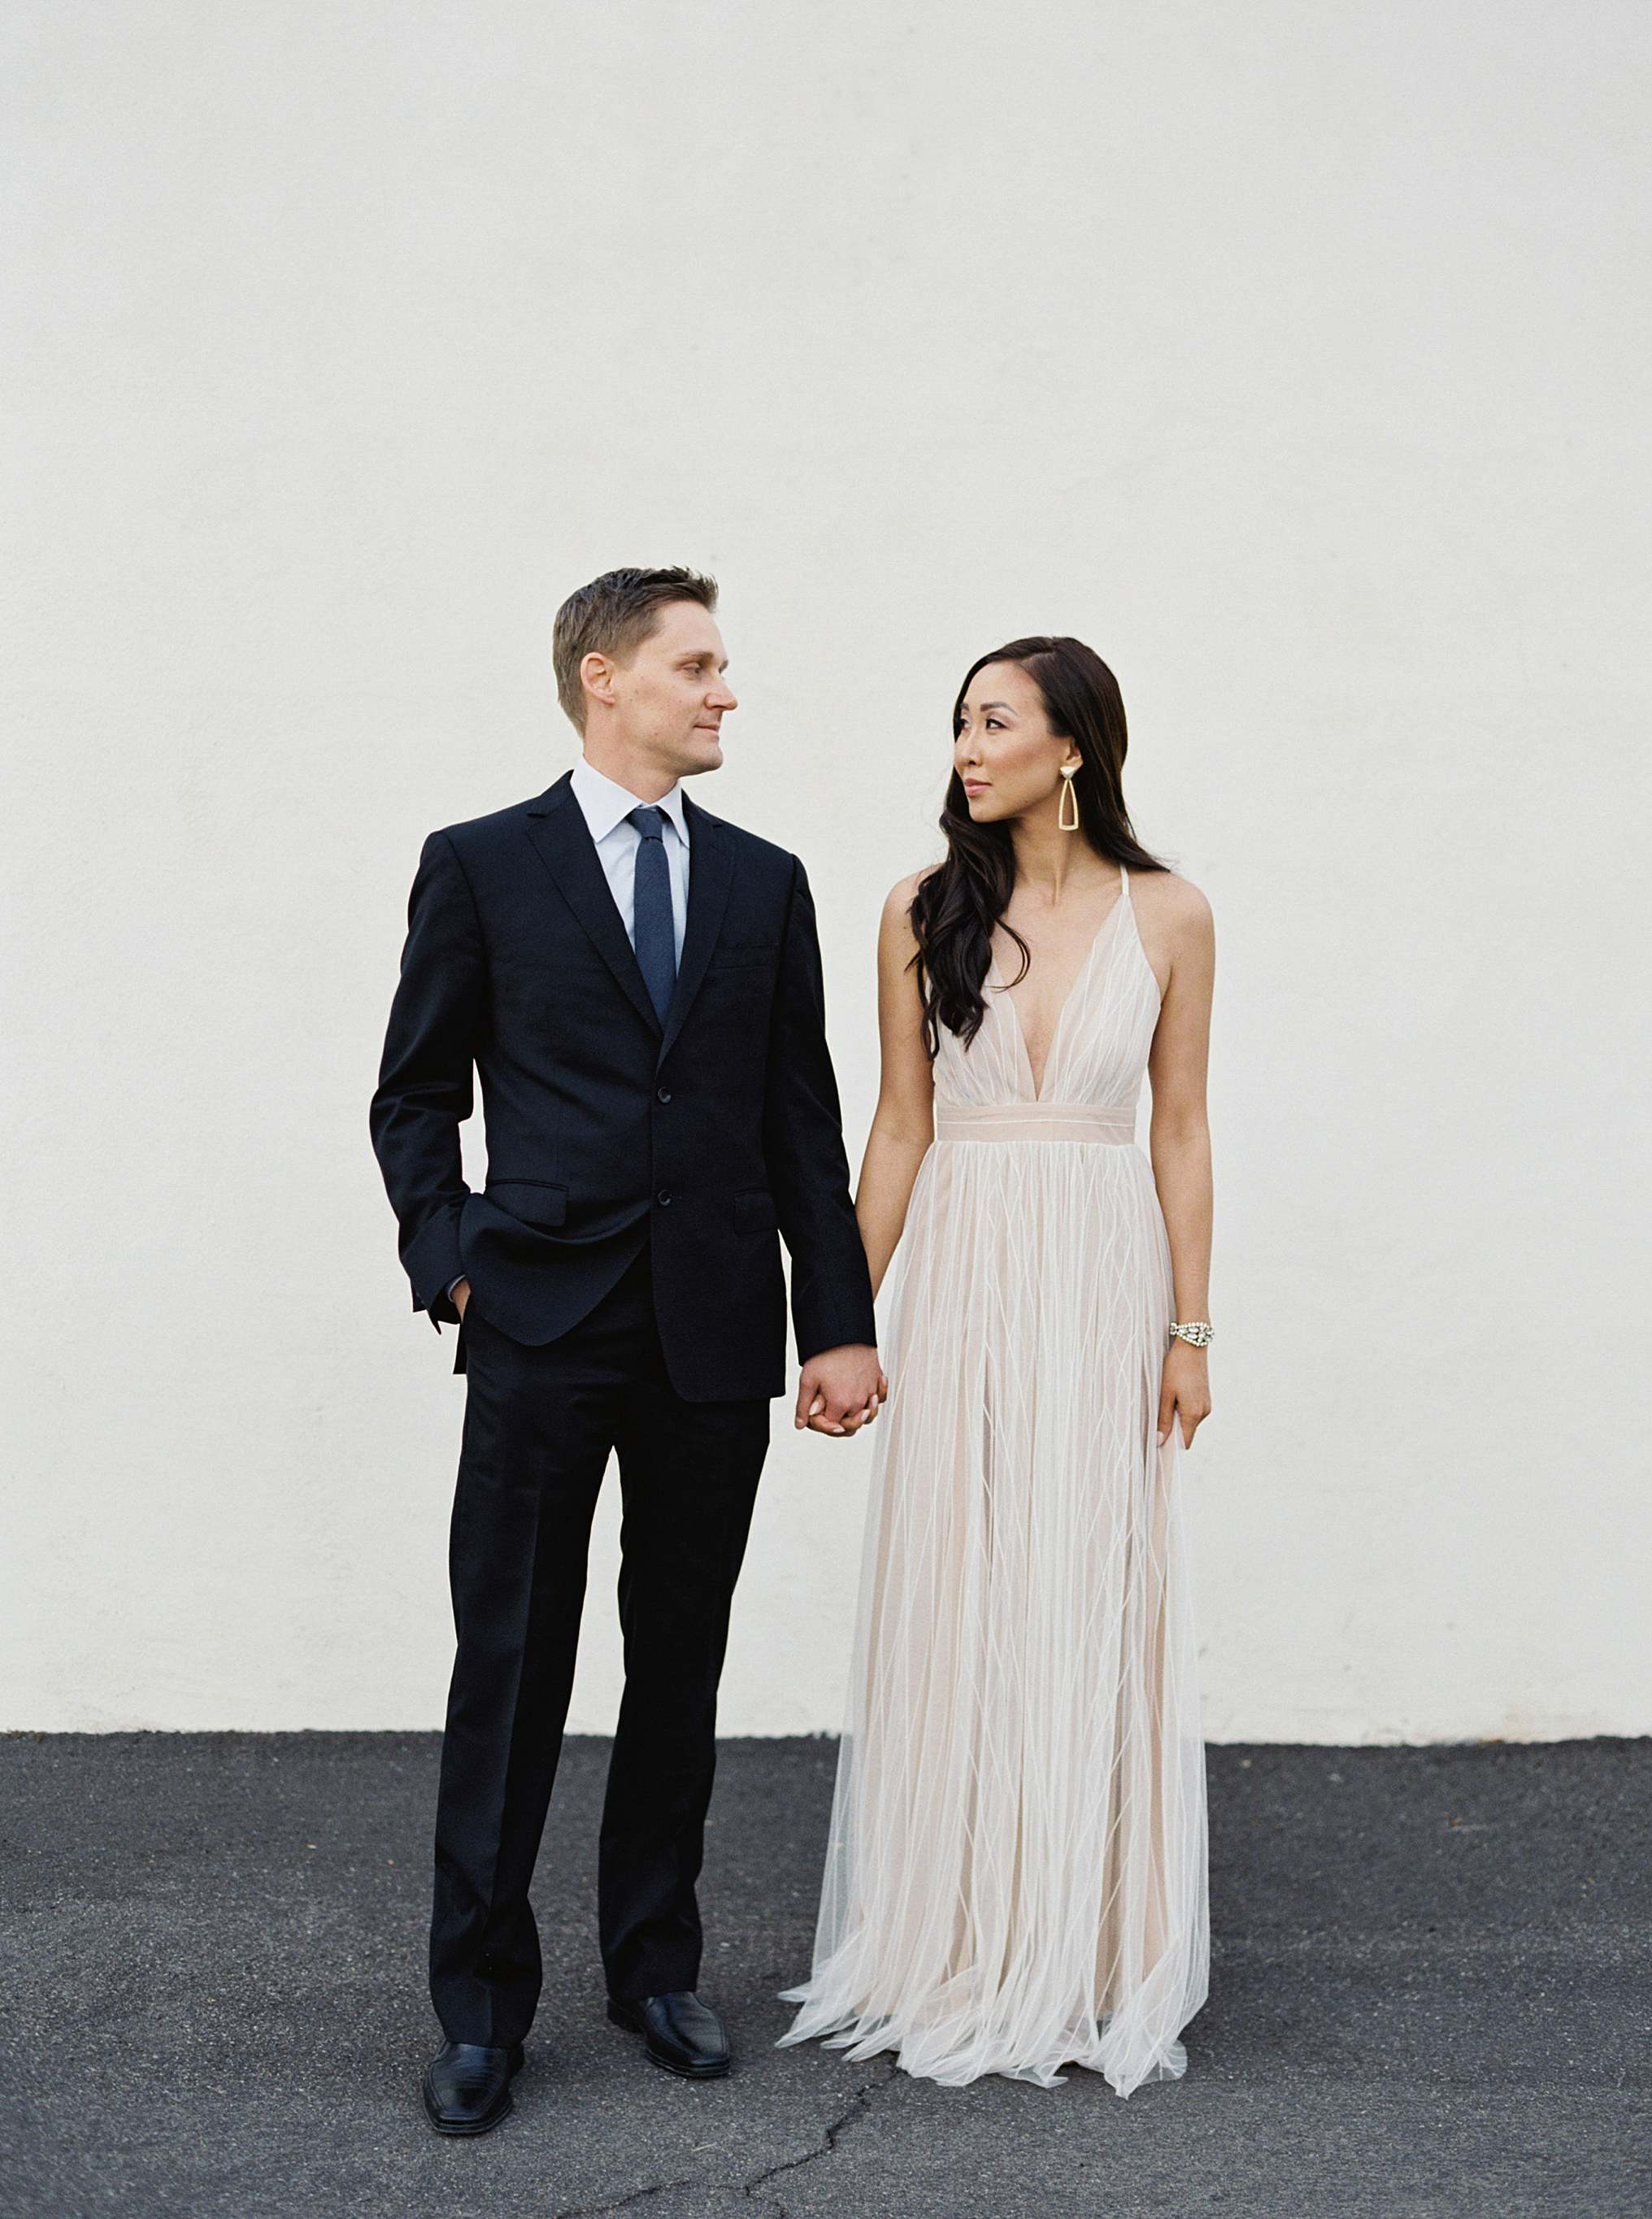 engagement wedding shoot Inspo bridal engagement photo idea white tulle dress glam engagement shoot brandy Jackson film photographer lifestyle blogger Diana elizabeth